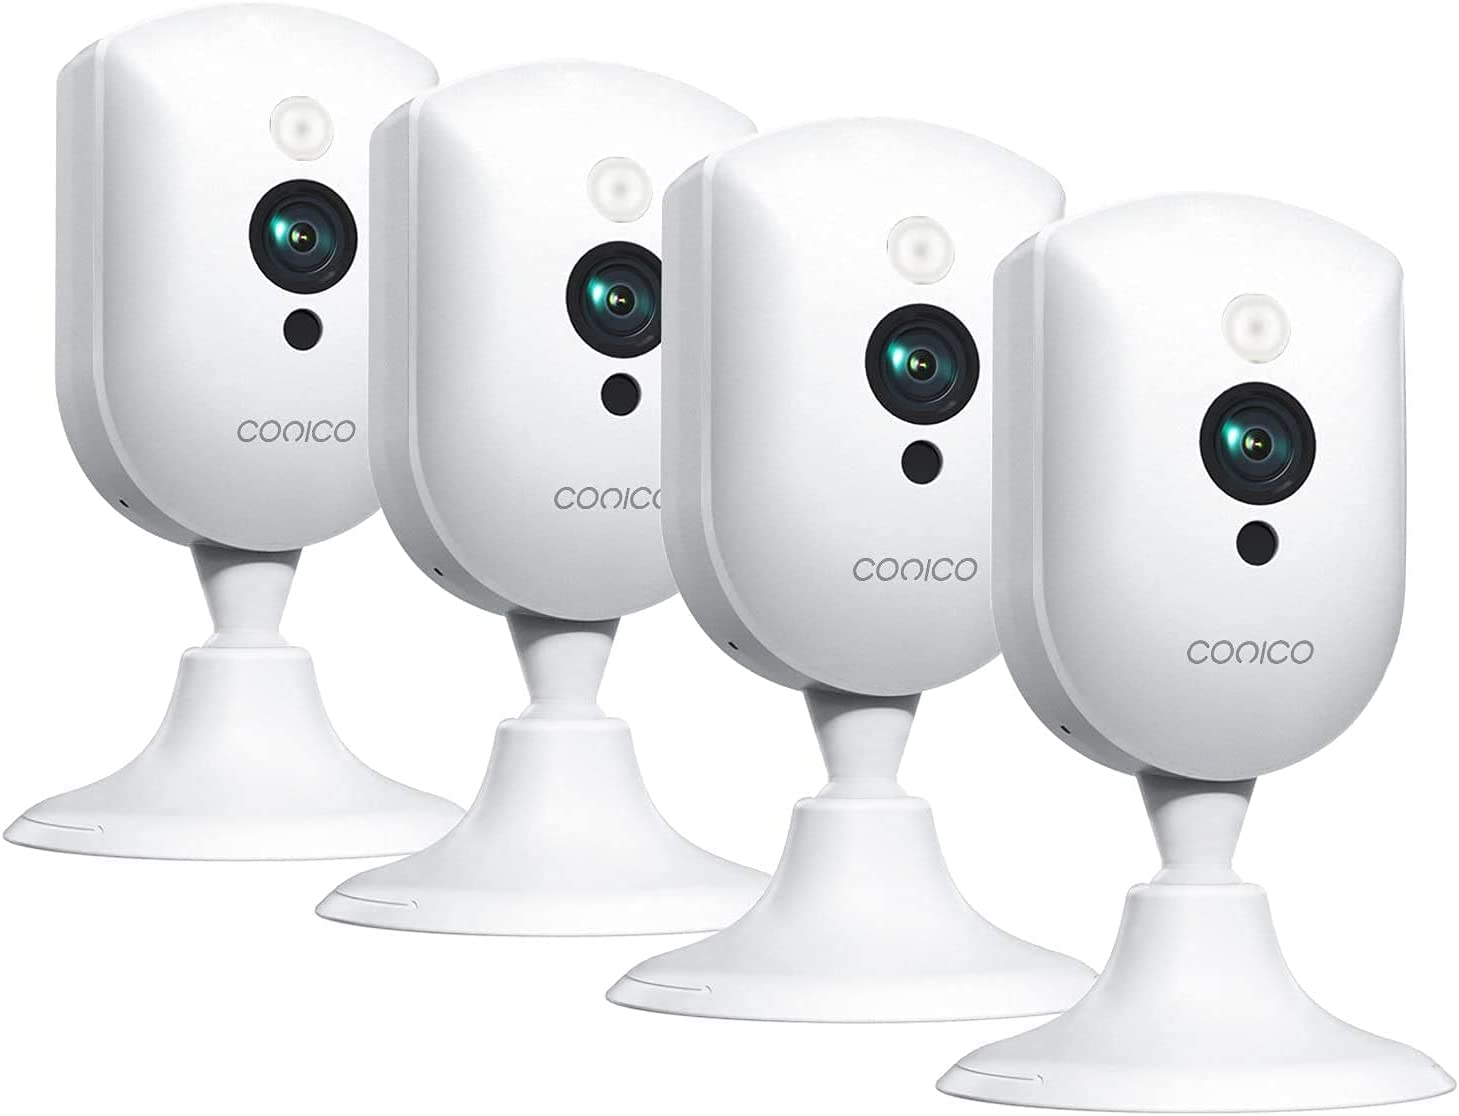 Conico Baby Monitor,1080P HD Home Security Cameras with 8X Zoom,Motion and Sound Detection,Indoor Surveillance Camera with Night Vision,Dual Storage,IP Camera for Baby,Pet,Elders(4 Packs)